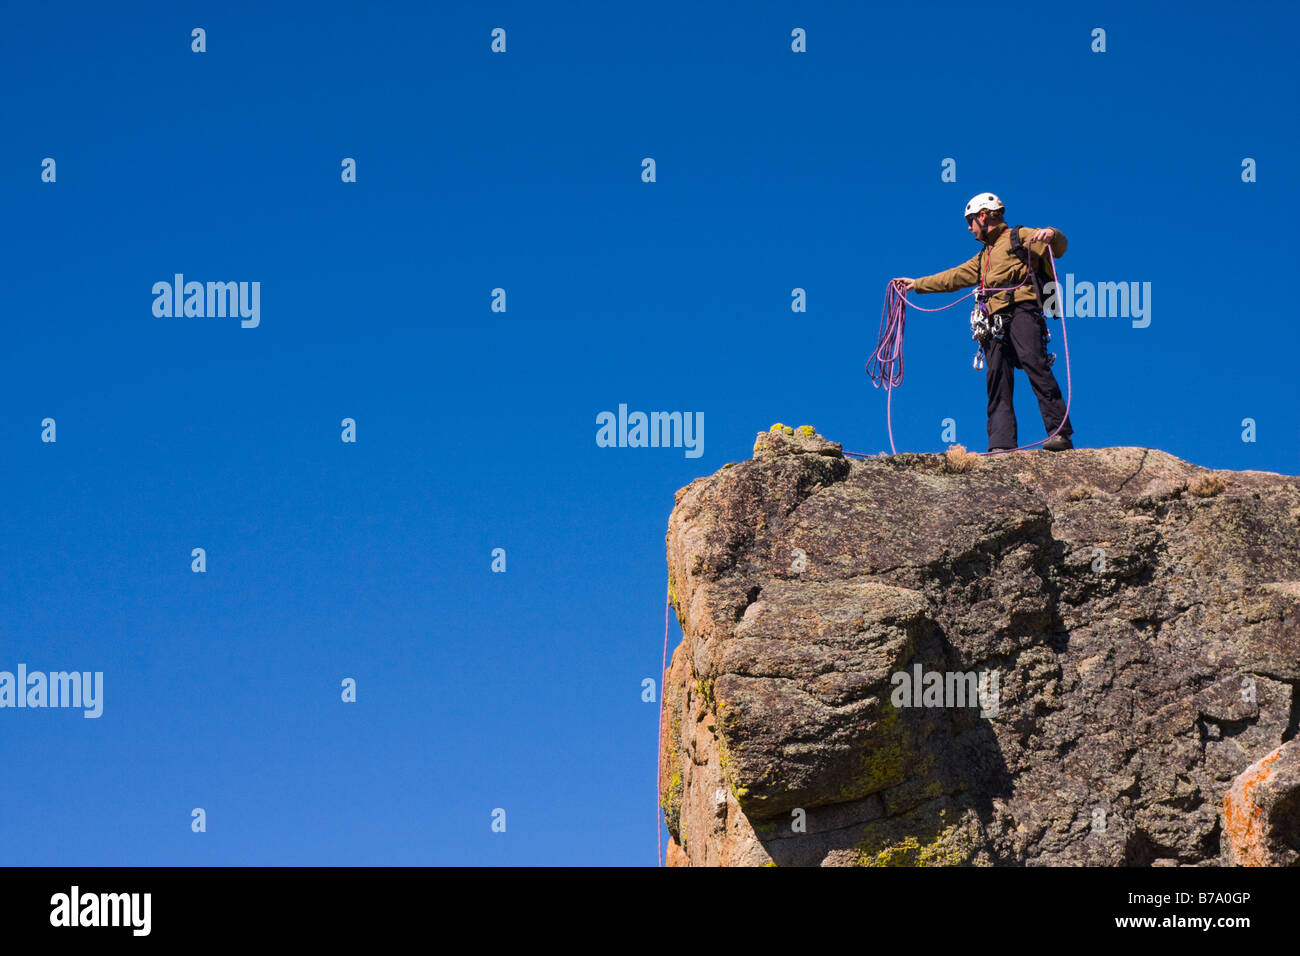 A mountaineer standing on top of a cliff coiling his climbing rope - Stock Image